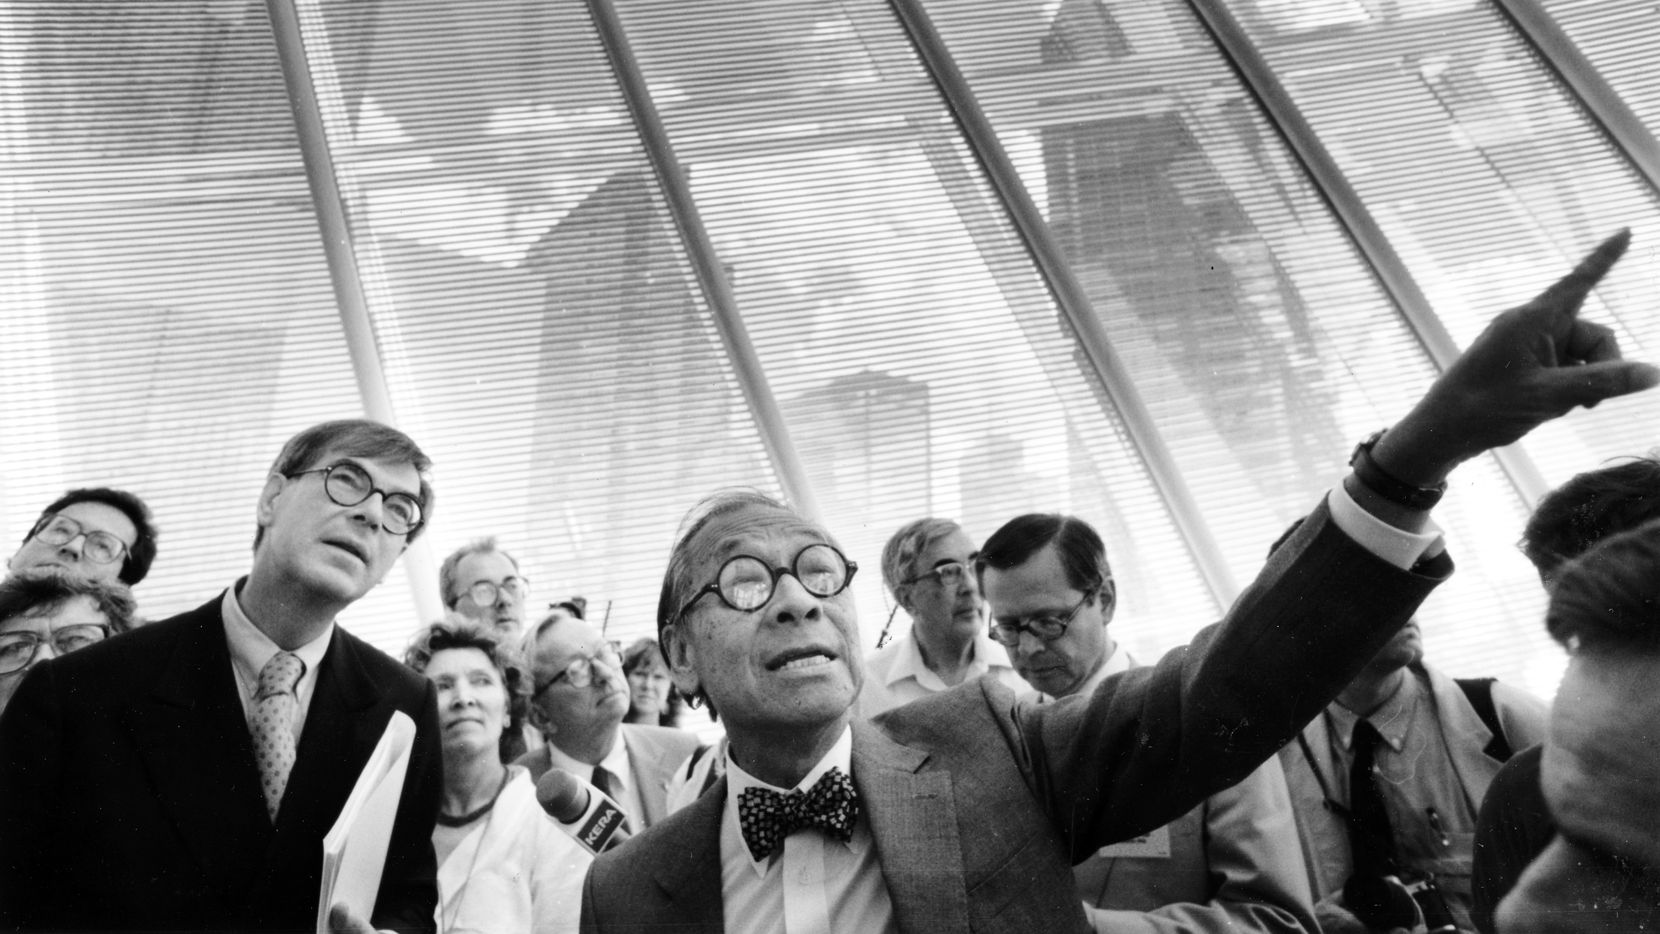 Architect I.M. Pei, who designed the Morton H. Meyerson Symphony Center, calls attention to details as he leads a media tour  of the new hall in September 1989. More than 200 journalists, many of them foreign music and architecture critics, were visiting.